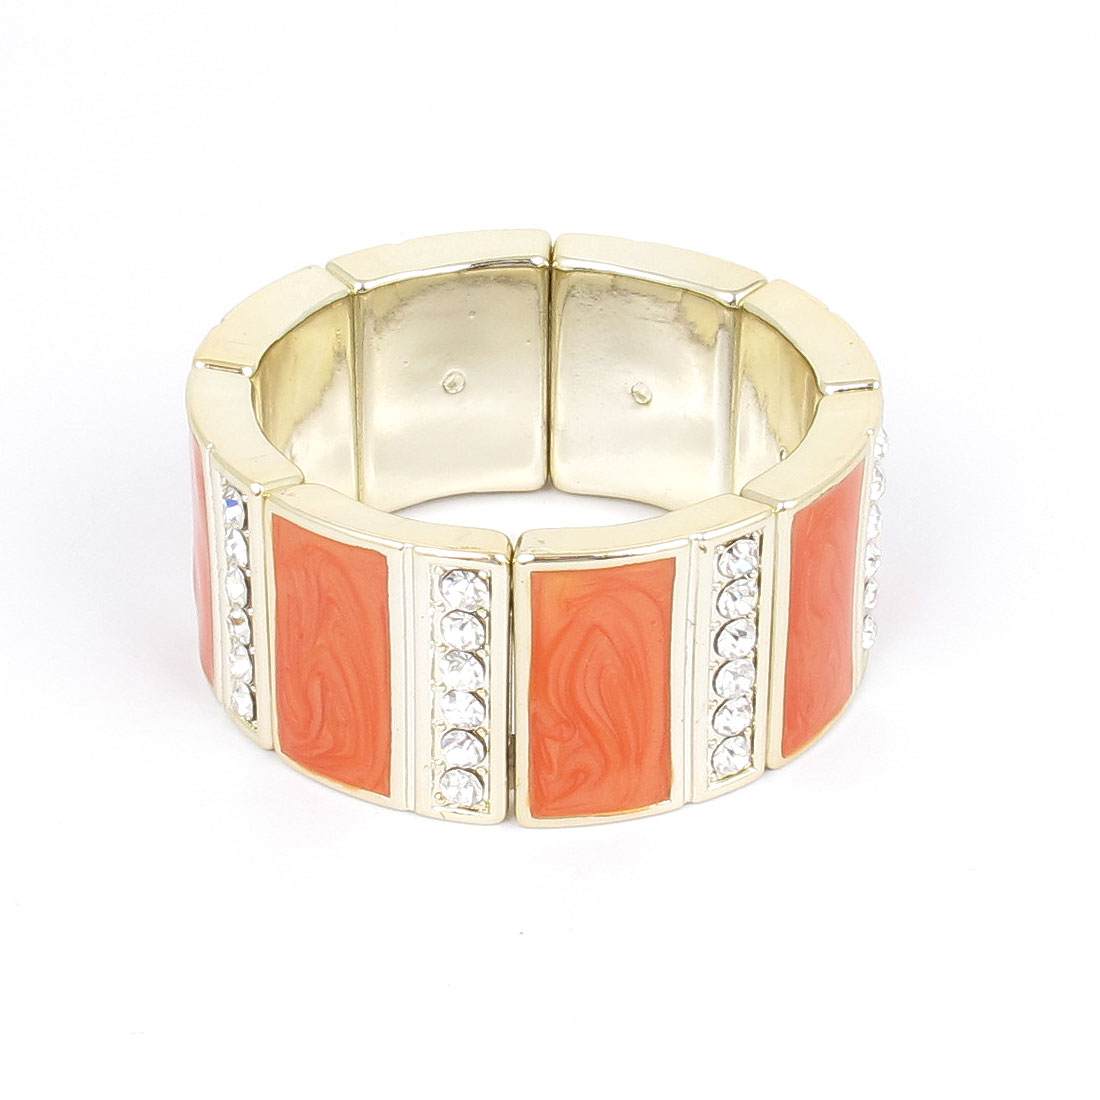 Women Plastic Rhinestone Detailing Stretchy Wrist Decor Bangle Bracelet Orange